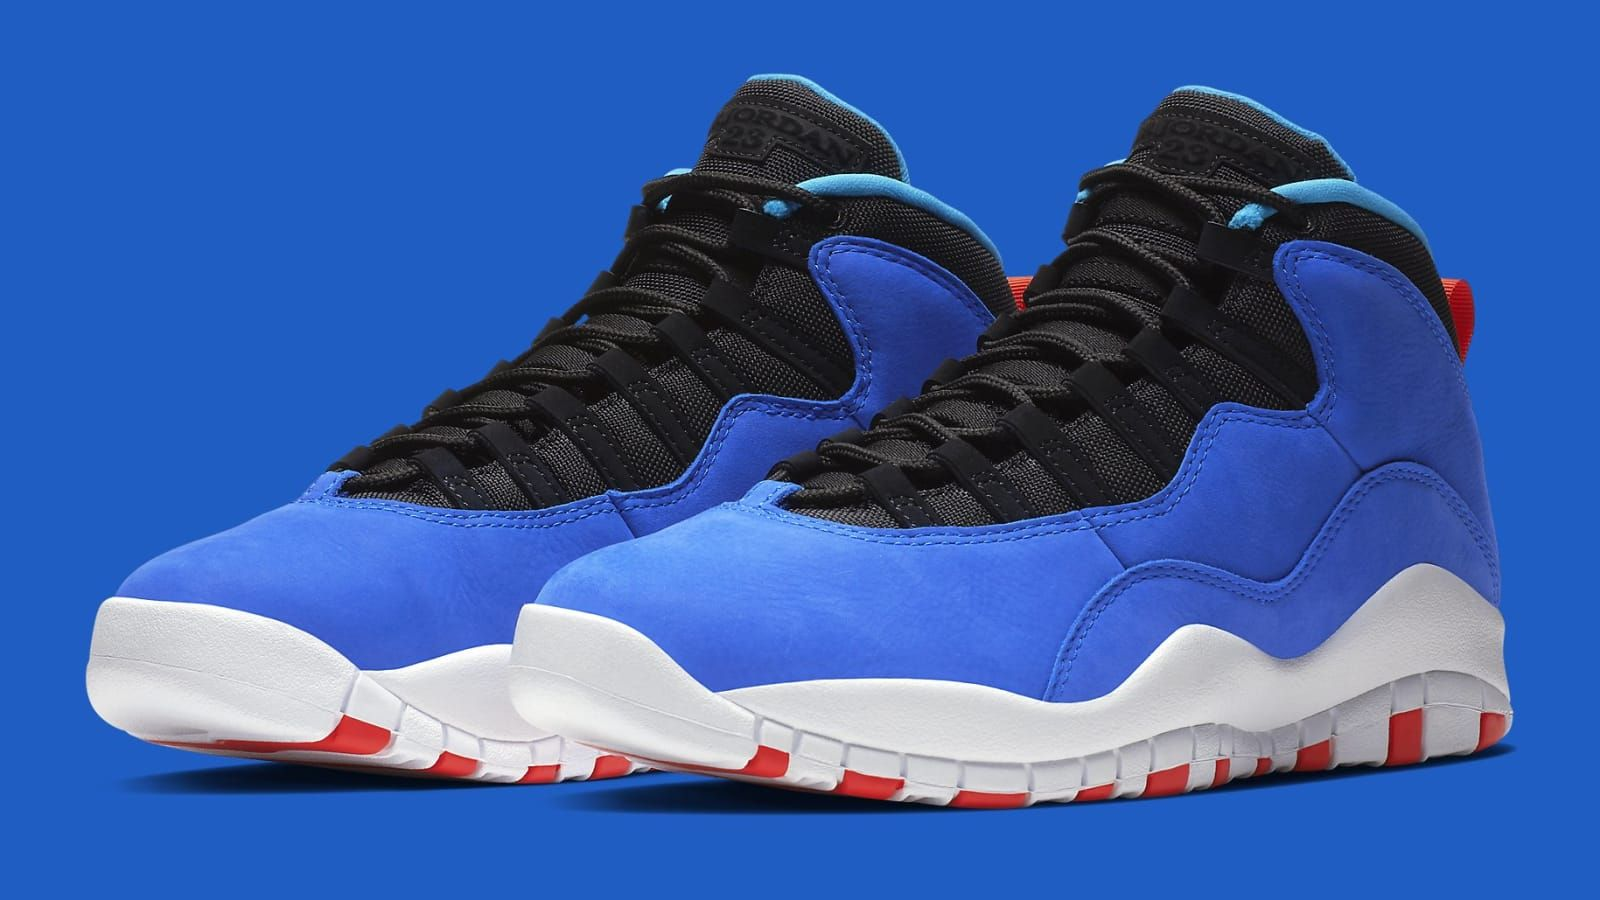 bde4f02433bc3b Air Jordan 10 (X)  Tinker  Available Early Release Date